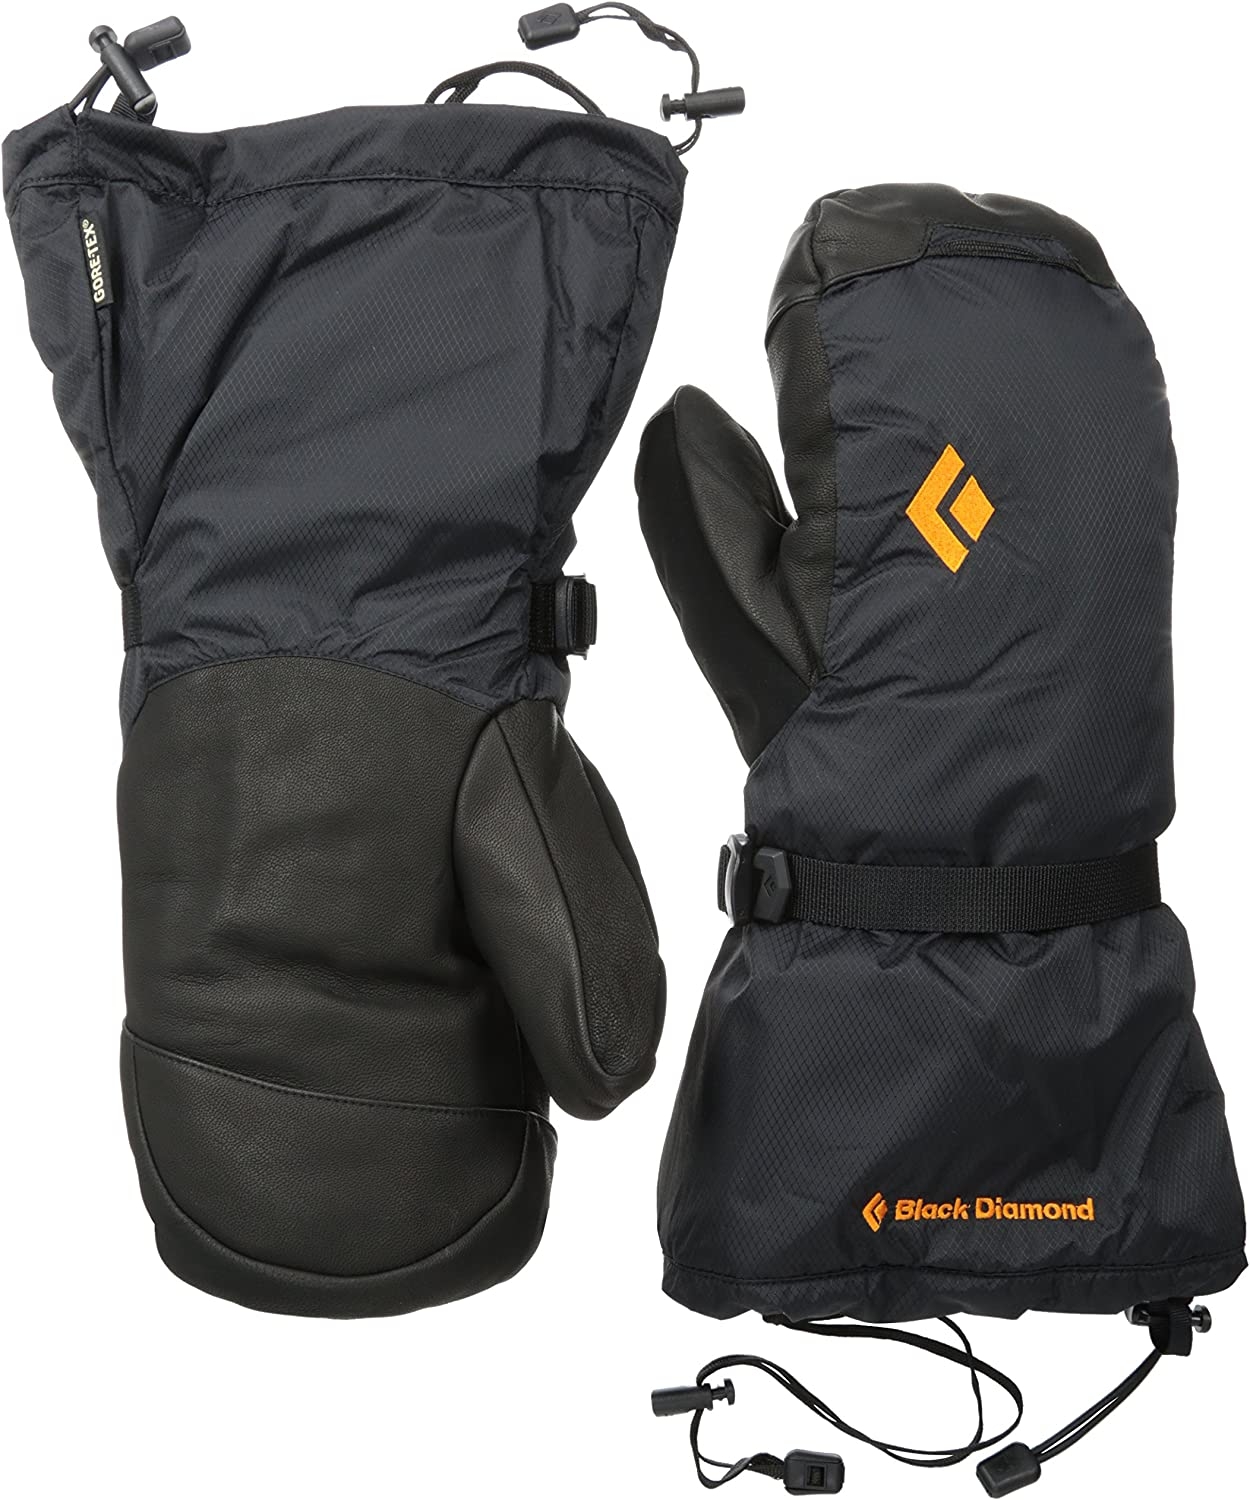 Black Diamond Absolute Mitts Cold Weather Gloves: Clothing